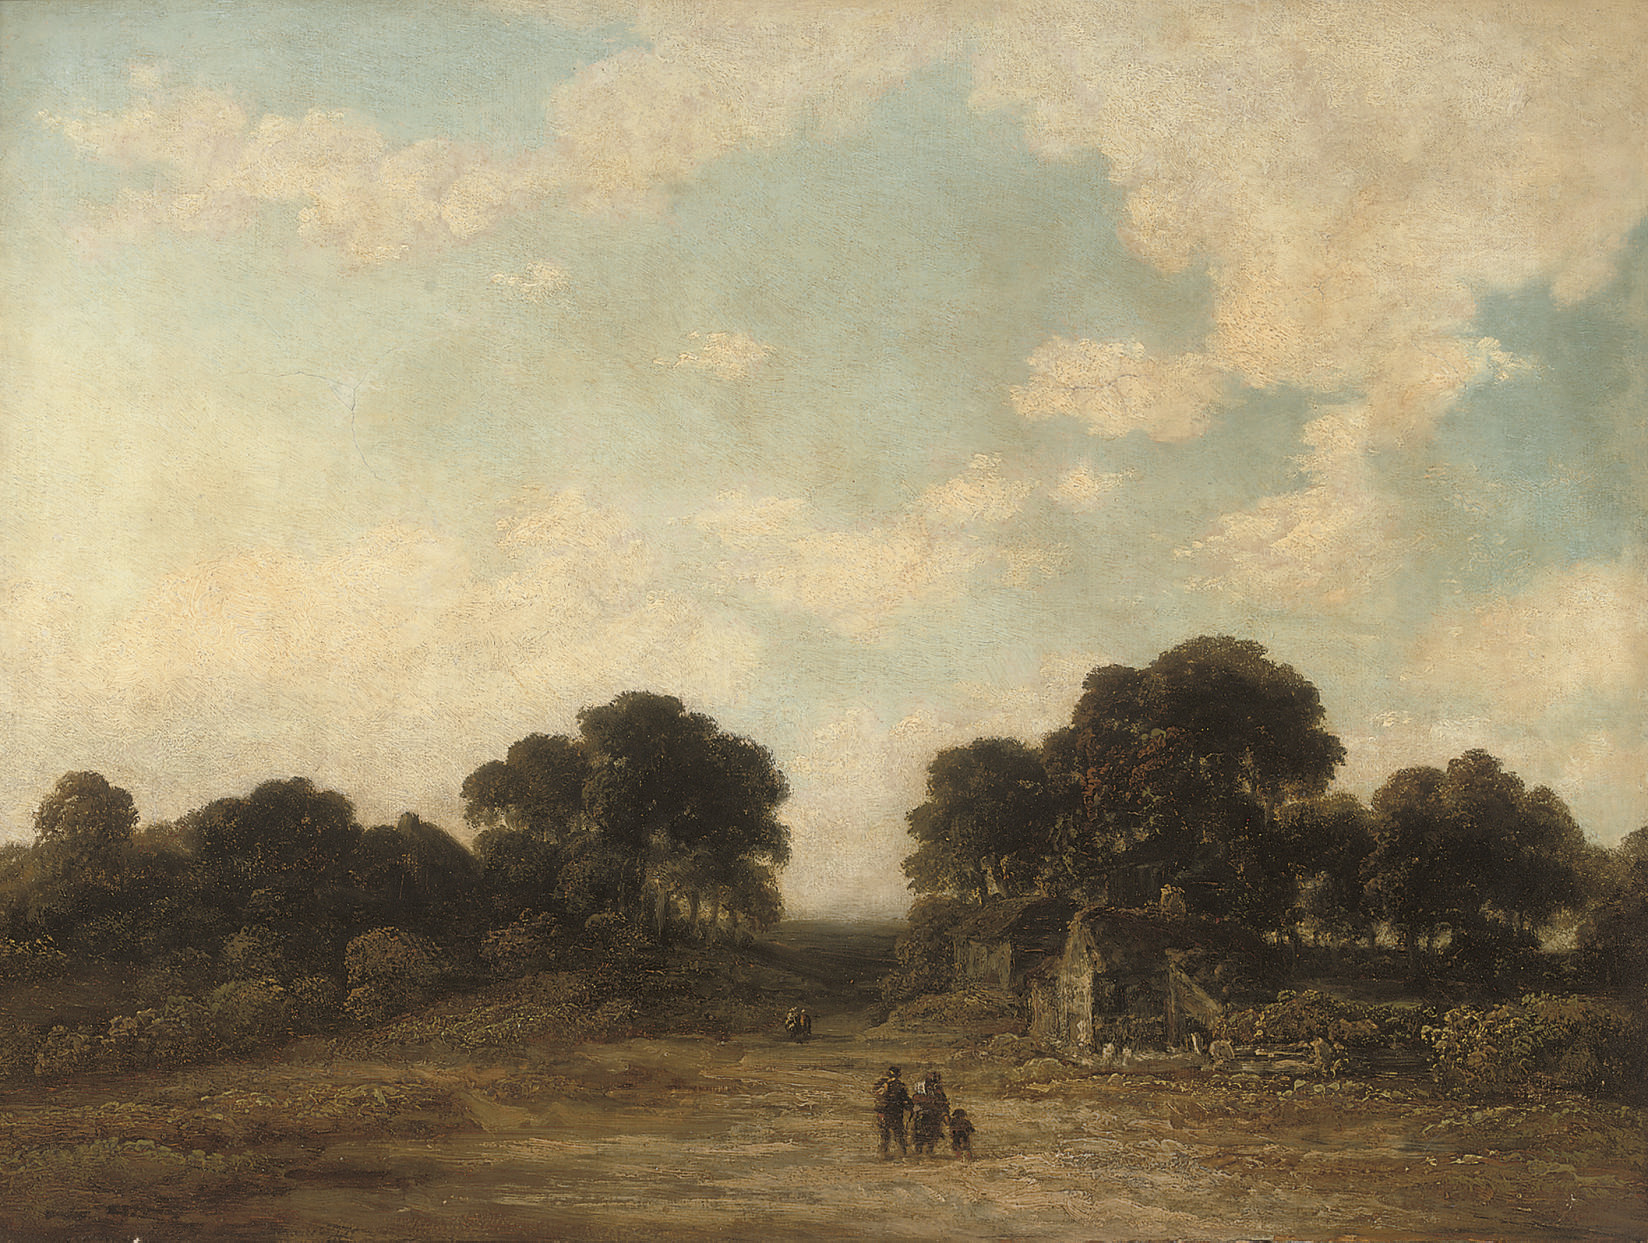 Figures on a country path